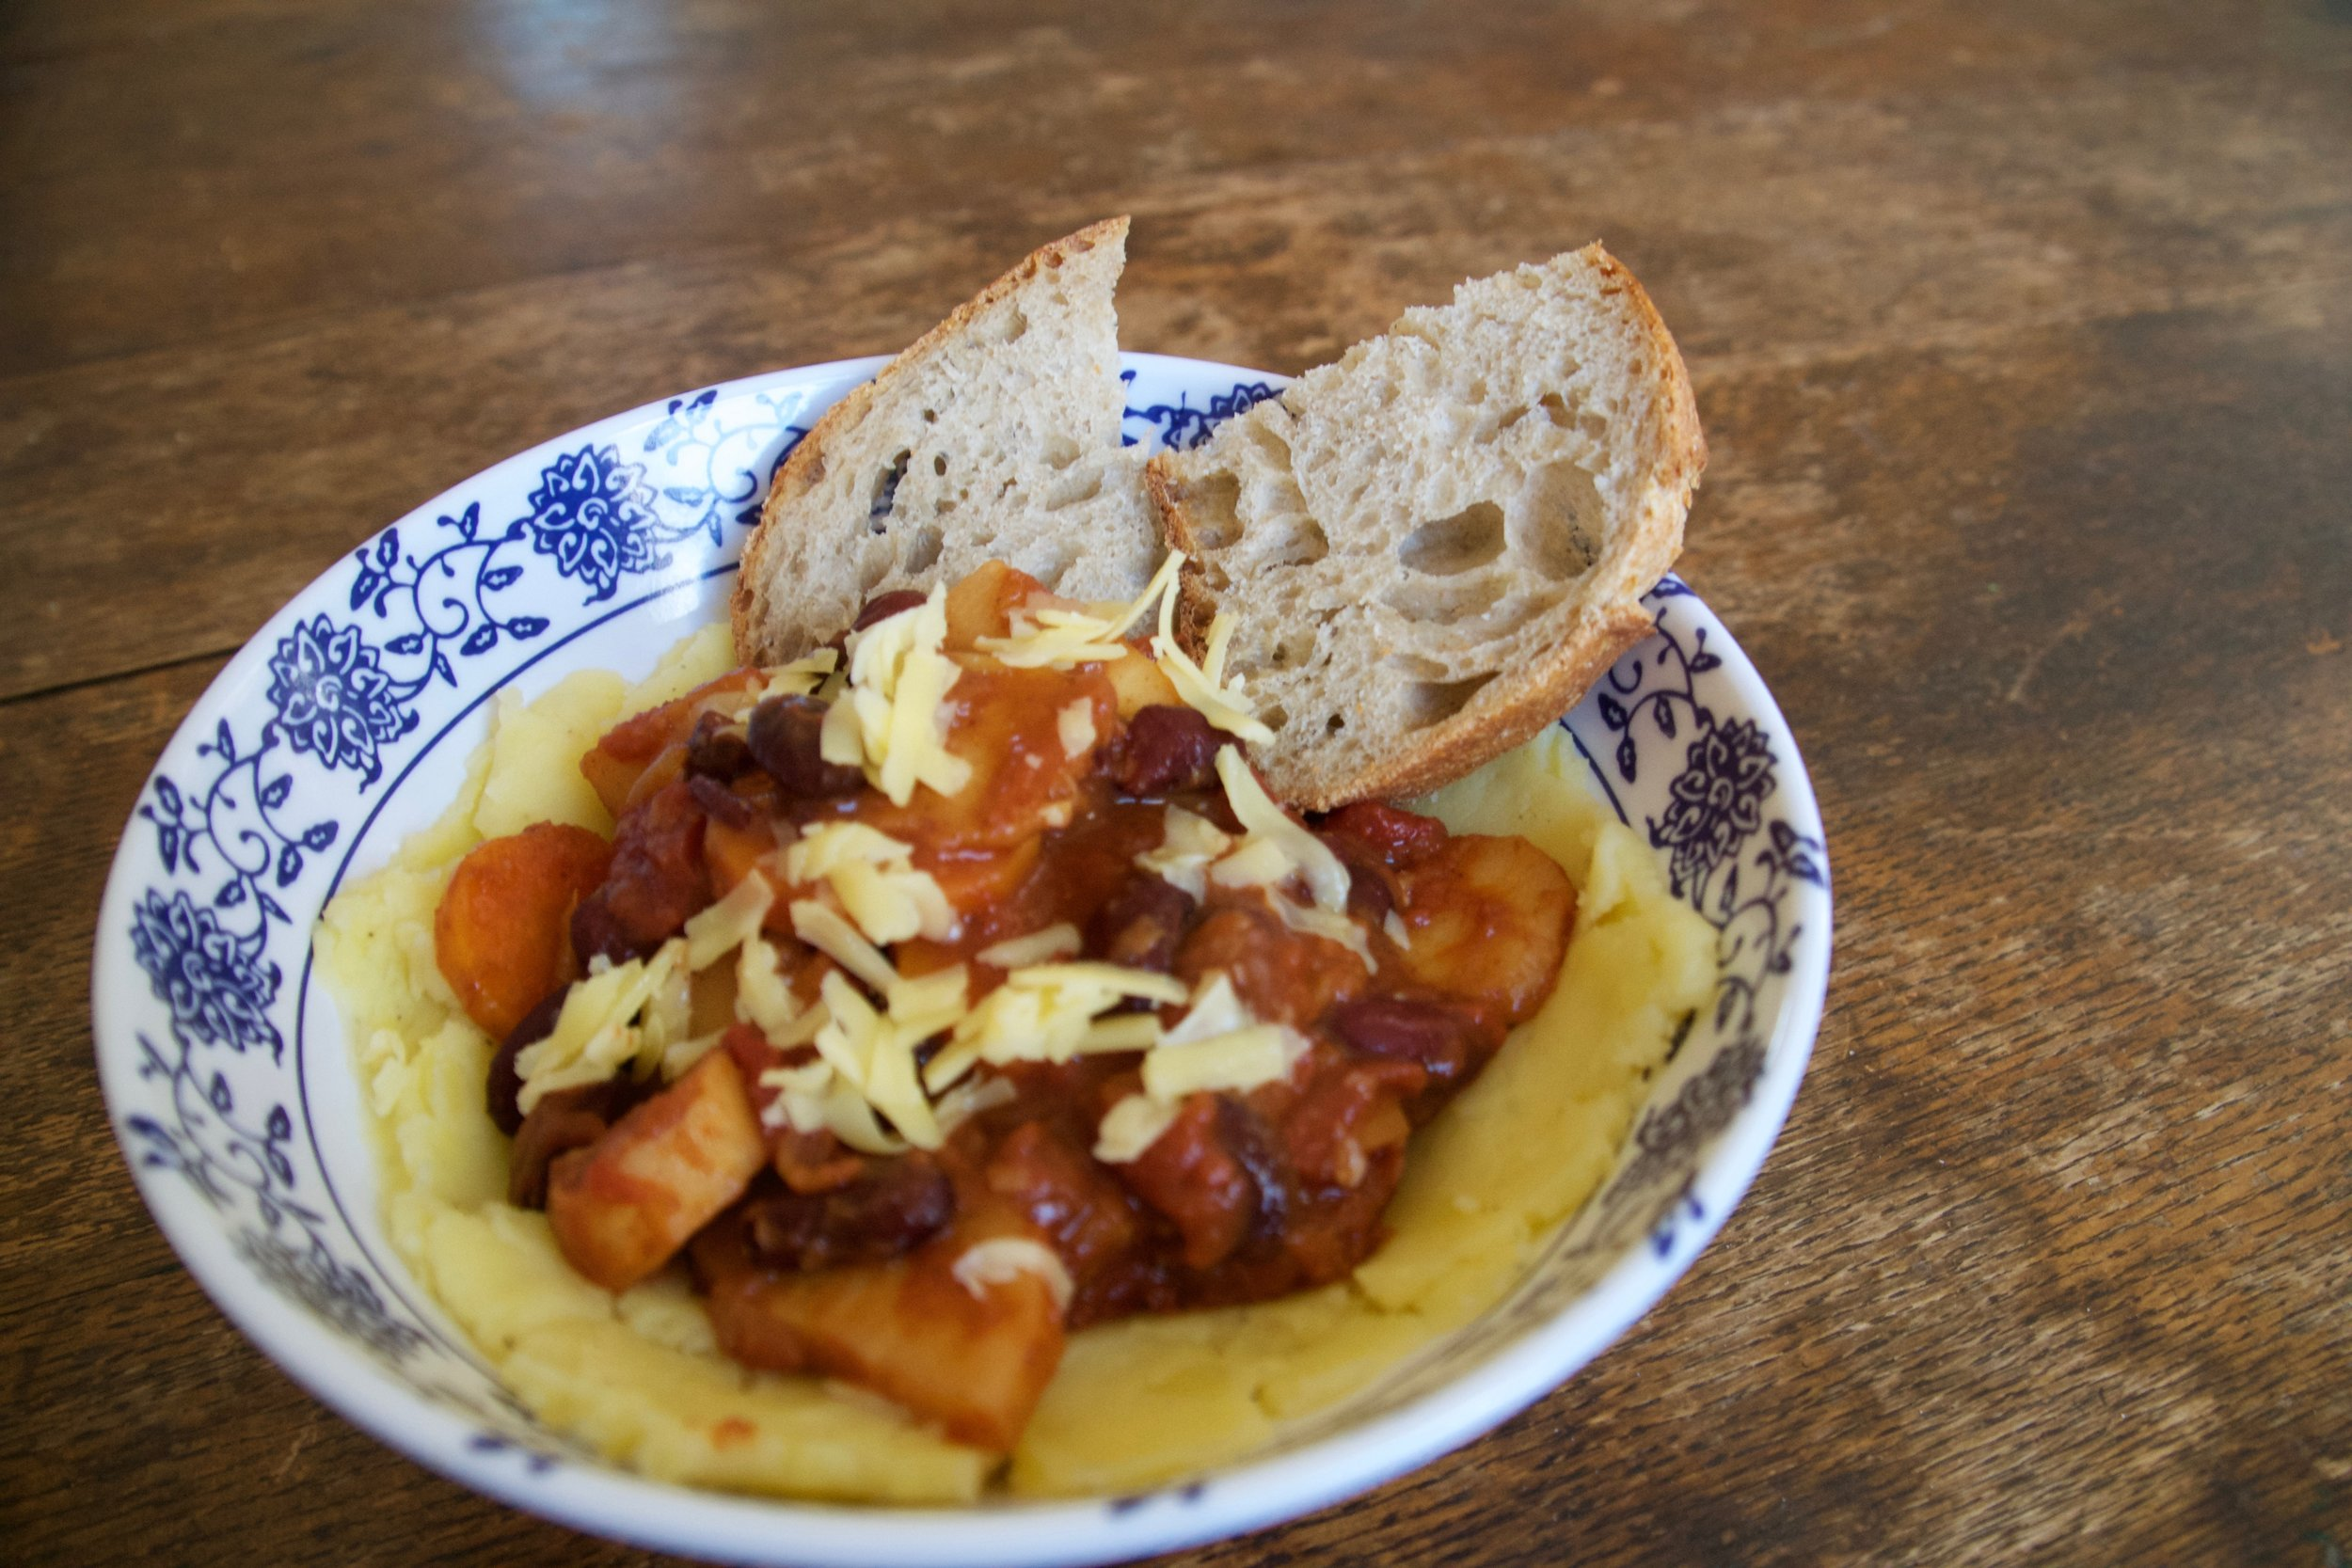 Parsnip and Carrot Chili with Beef or Vegetarian